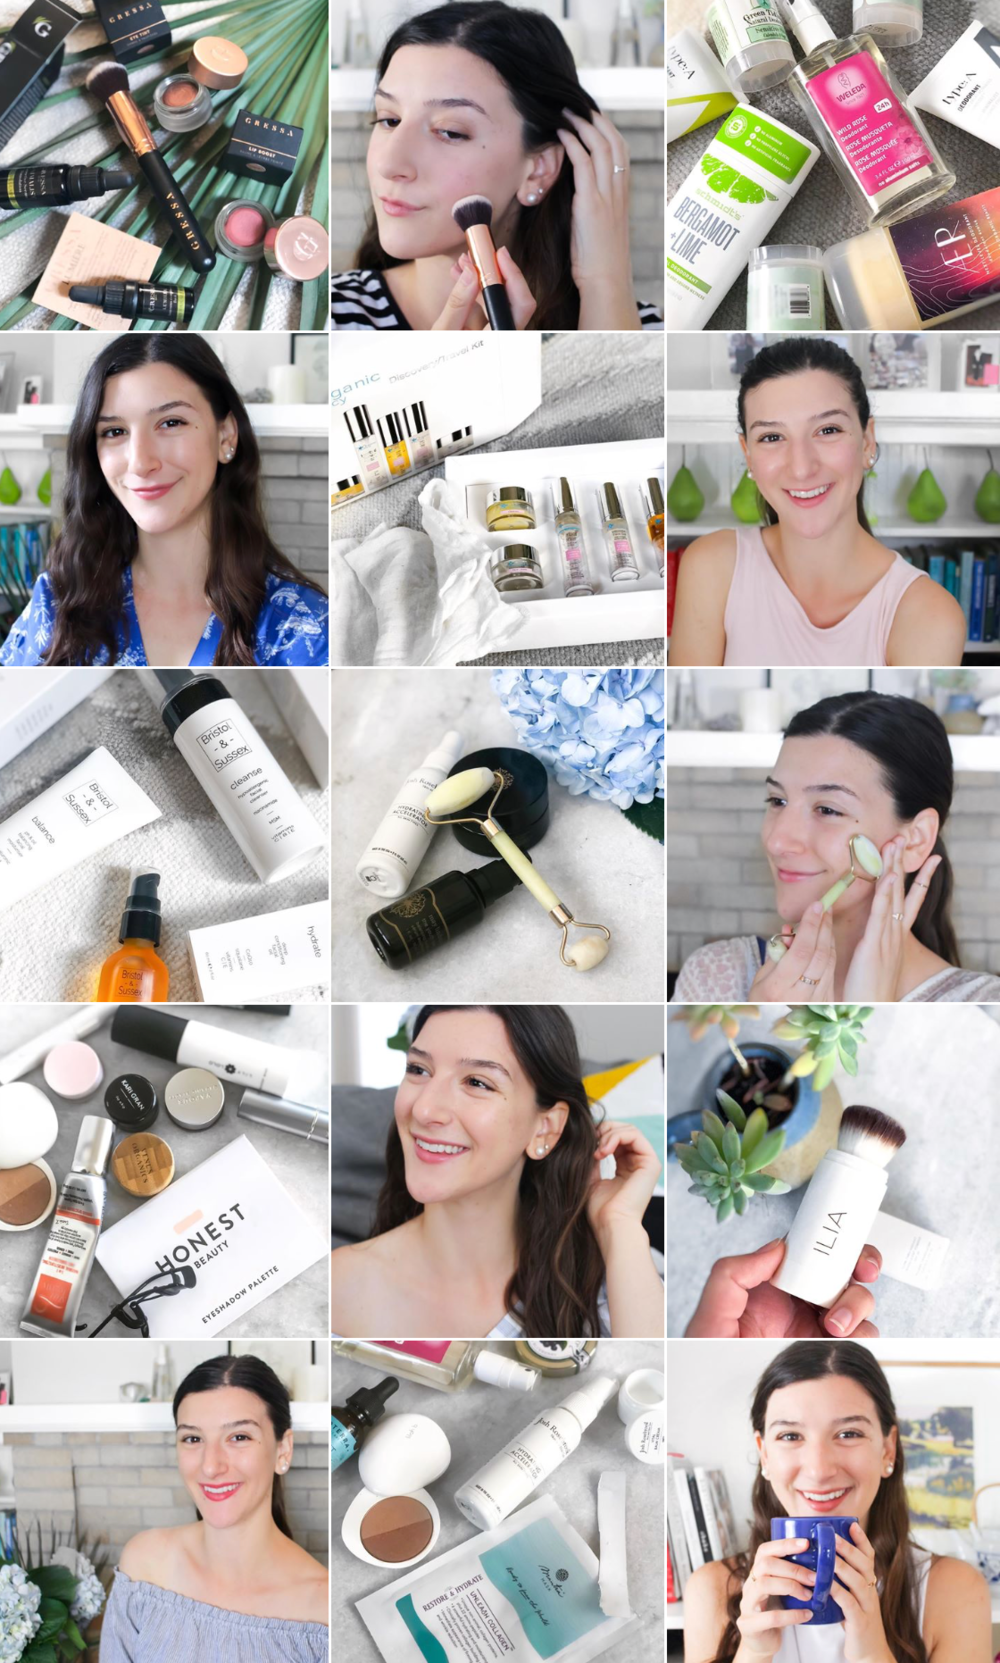 Cosmetics-By-Caroline-Instagram